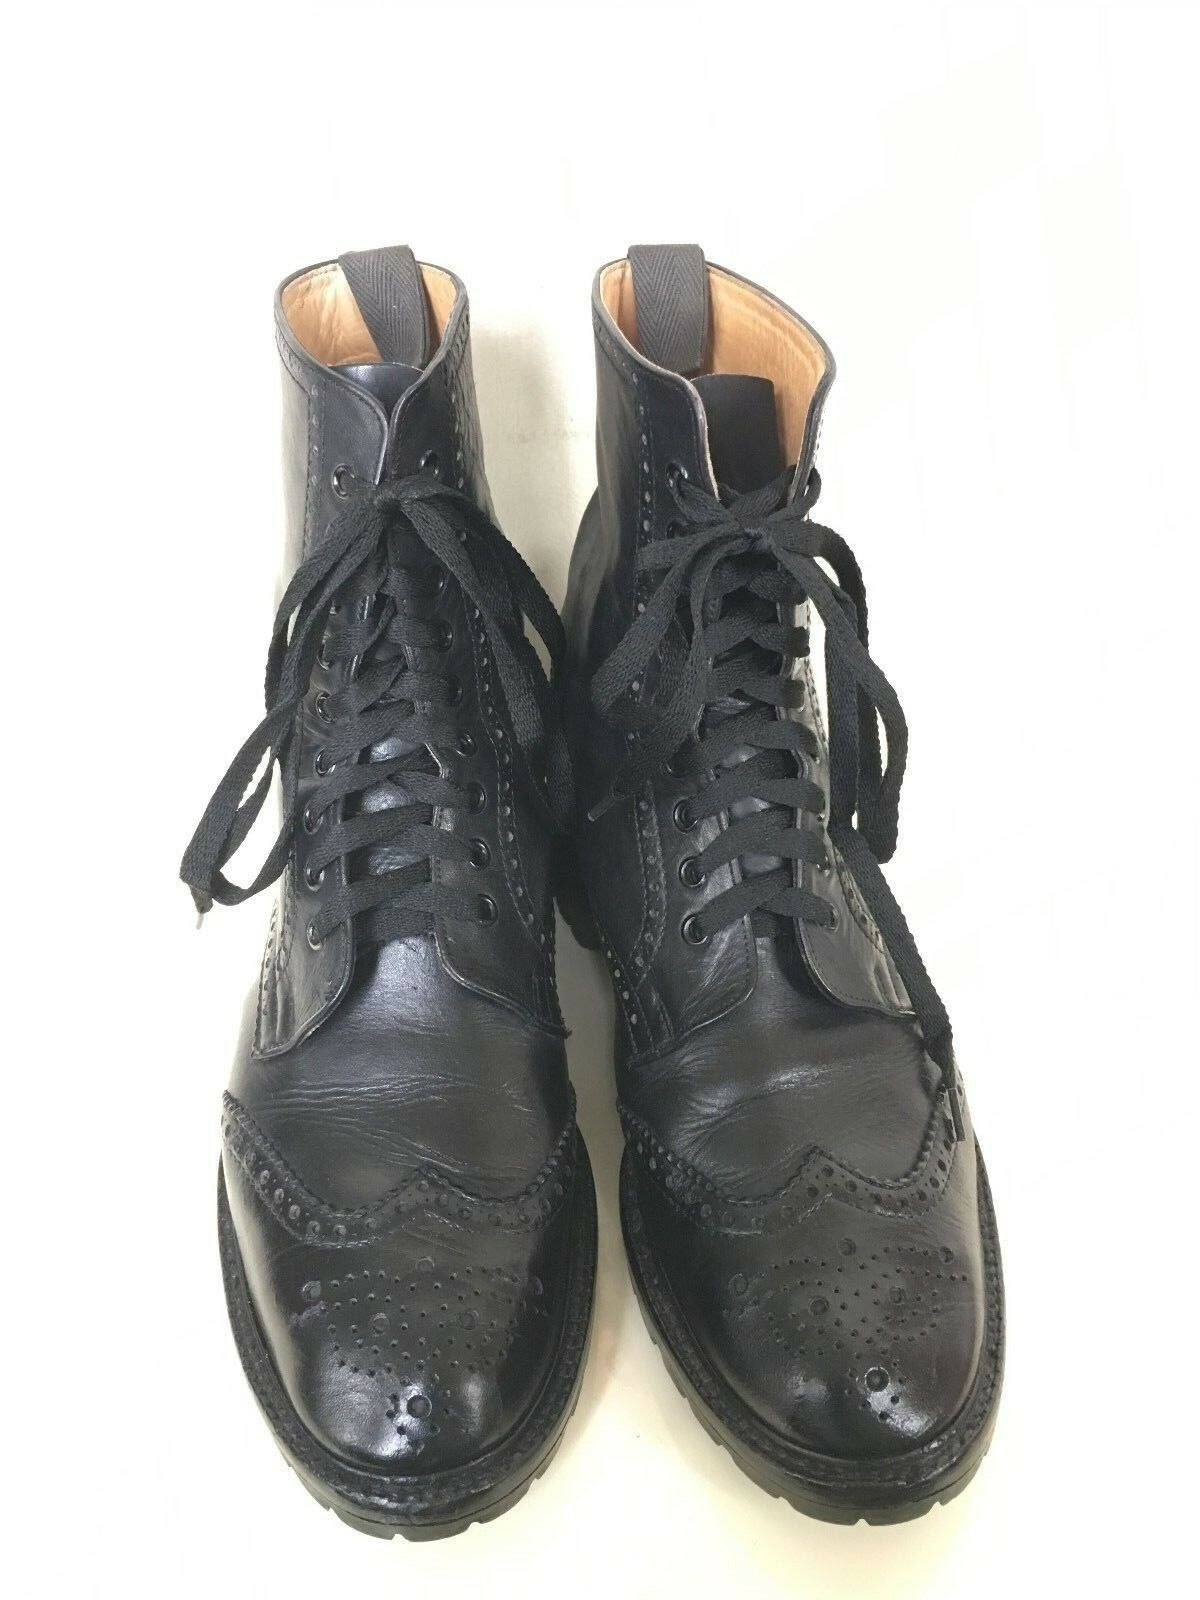 To Boot NY wingtip boots by Alfred Sargent Black England Sz / US 11